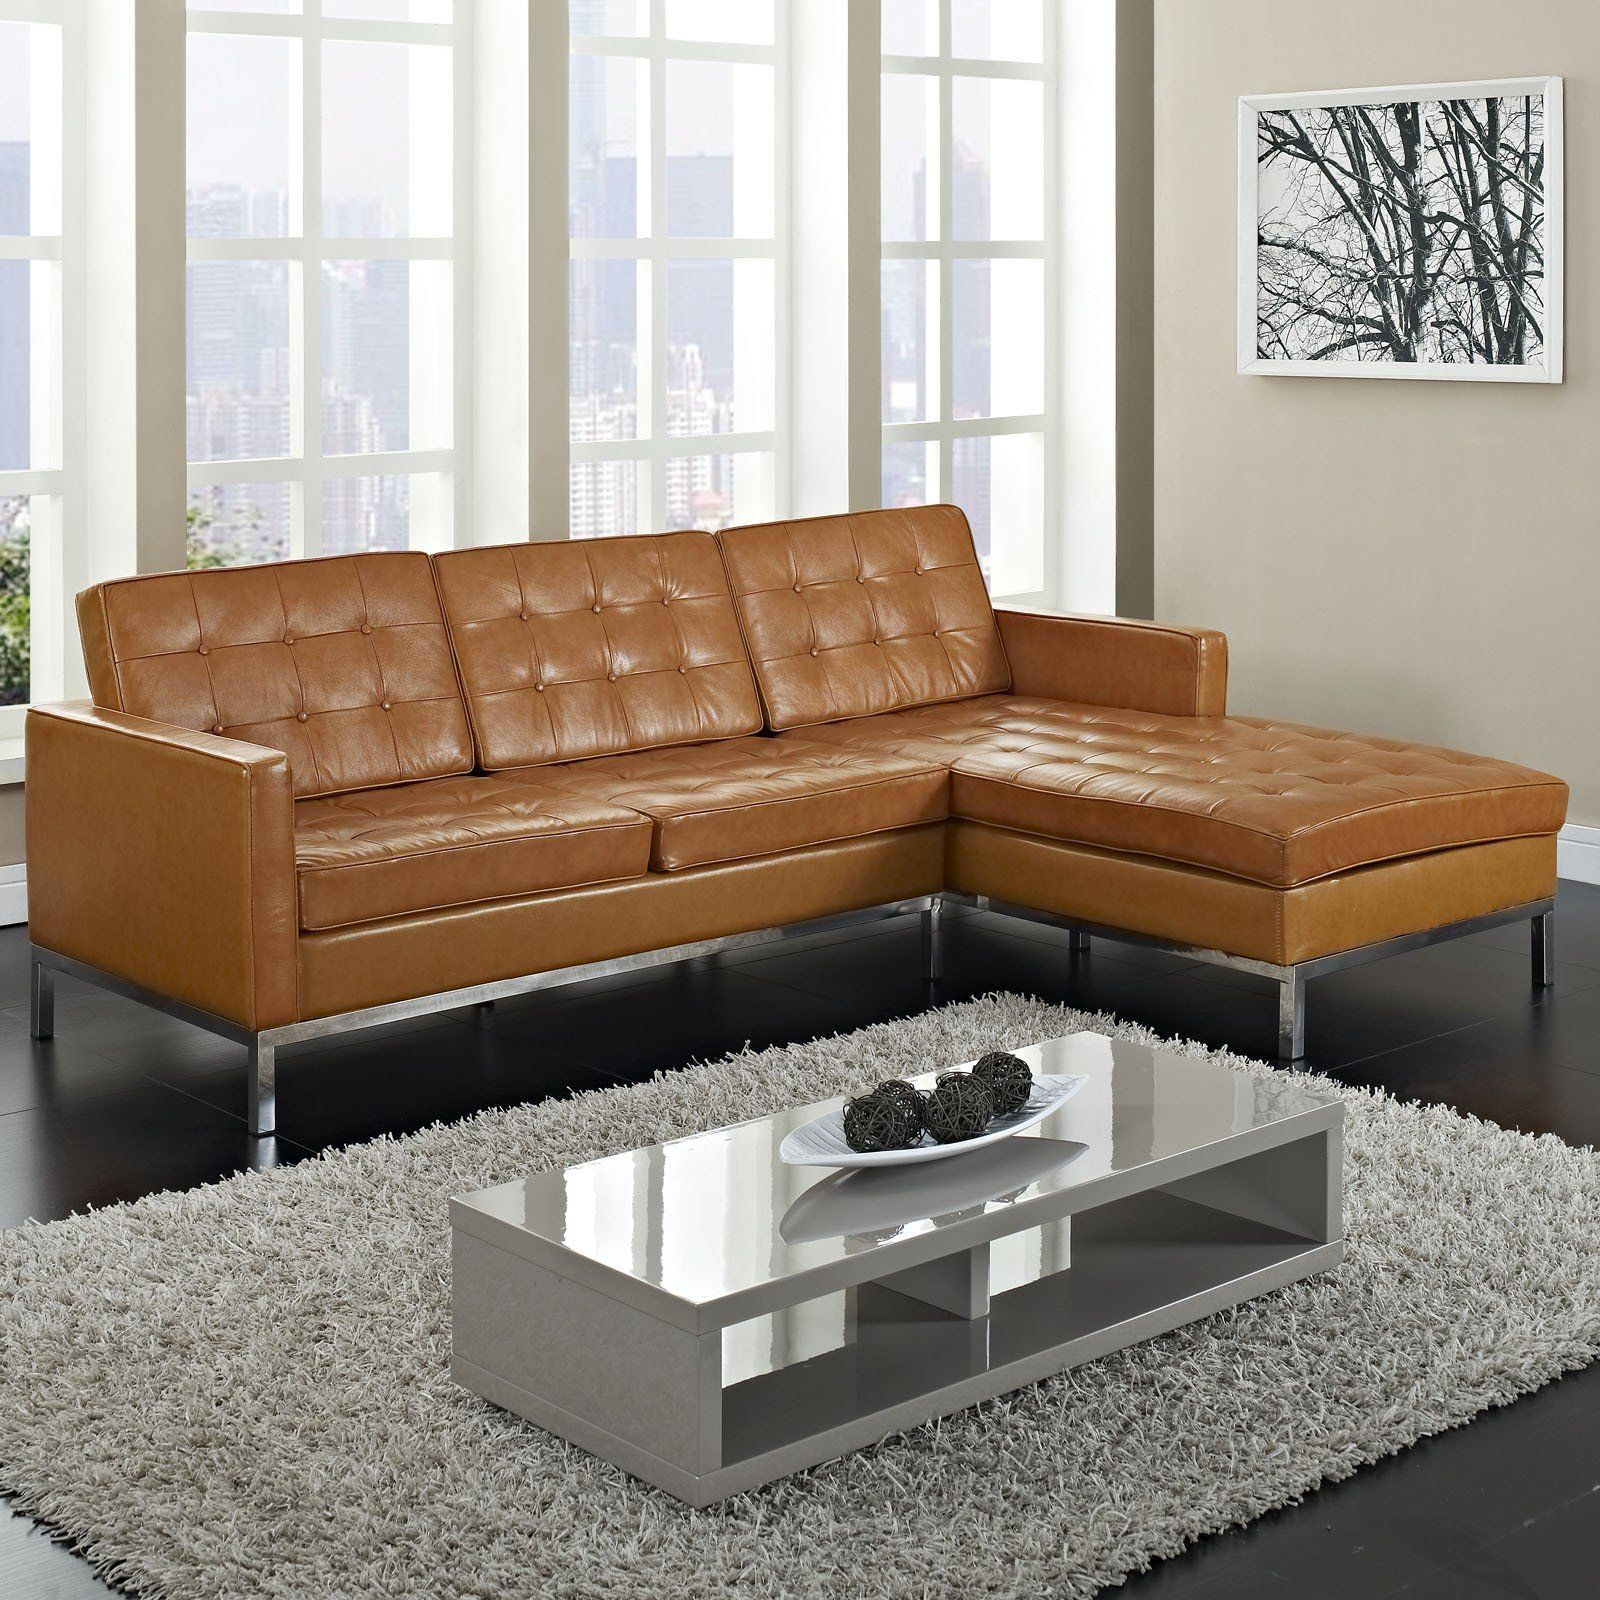 Modern Brown Leather Sofa Google Search Sofas For Small Spaces Contemporary Leather Sectional Sofa Sectional Sofa